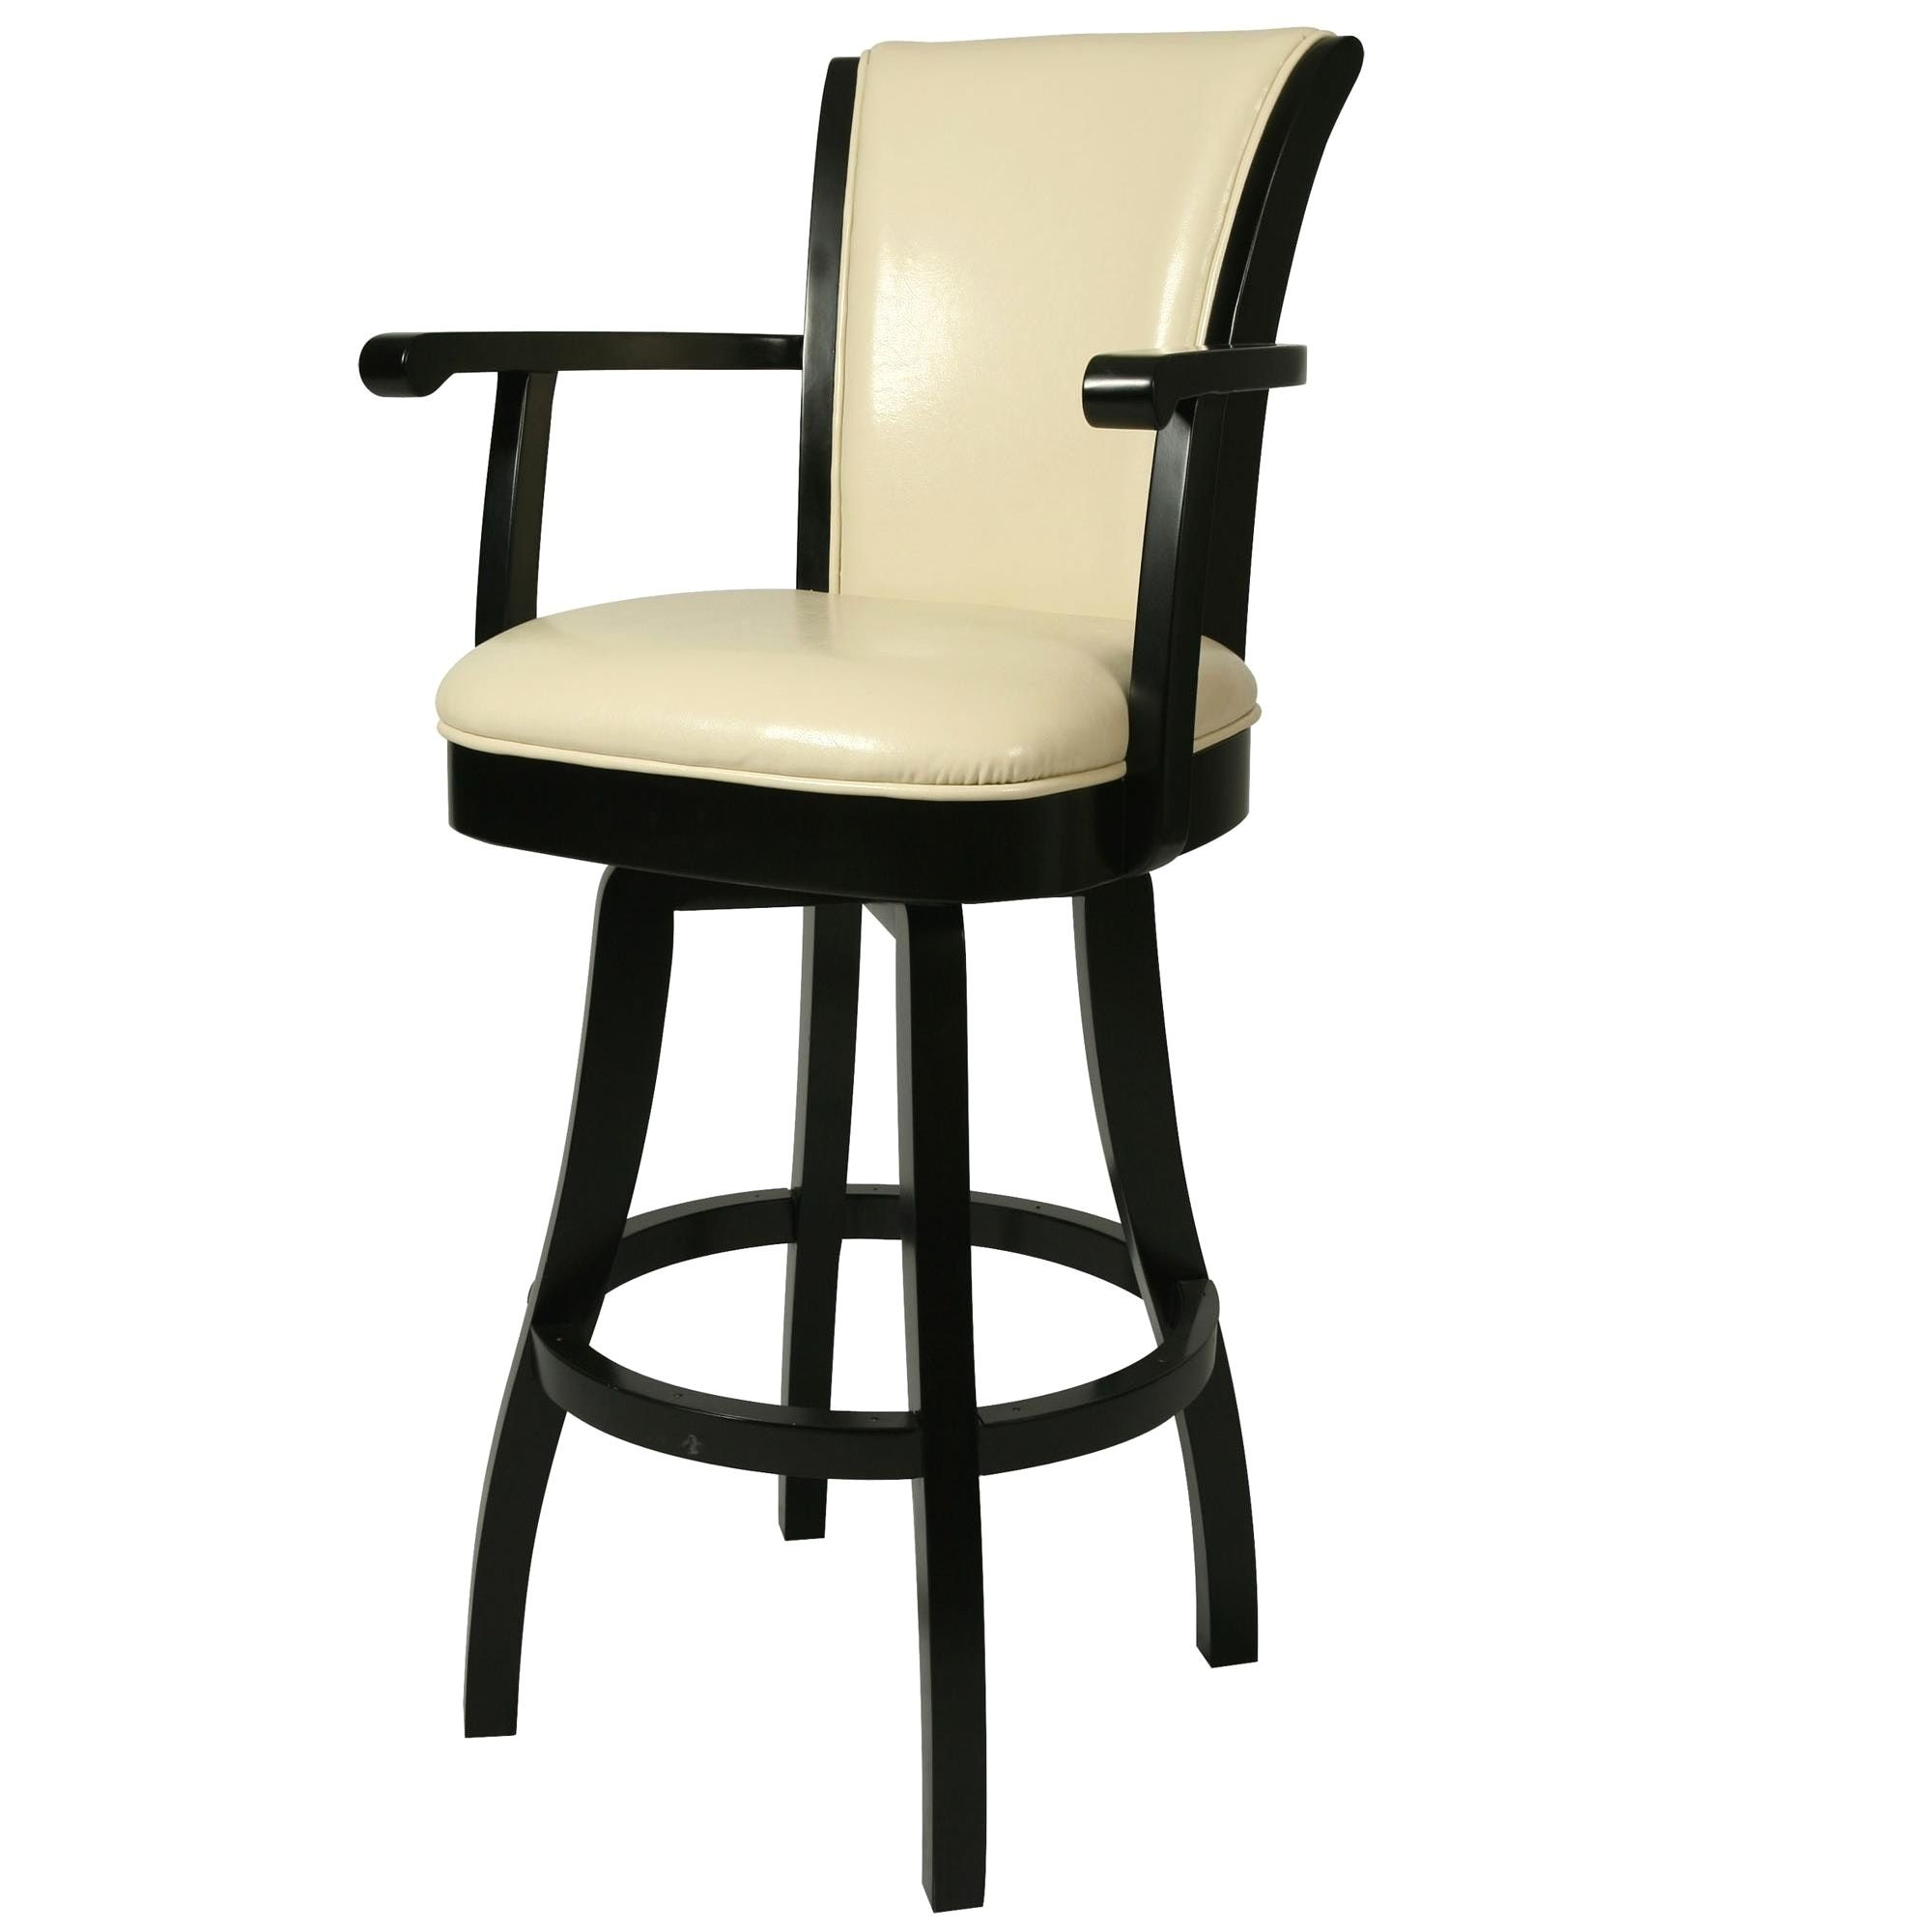 Charmant Glenwood 26 Leather Barstool With Arms Modern Bar Stools And